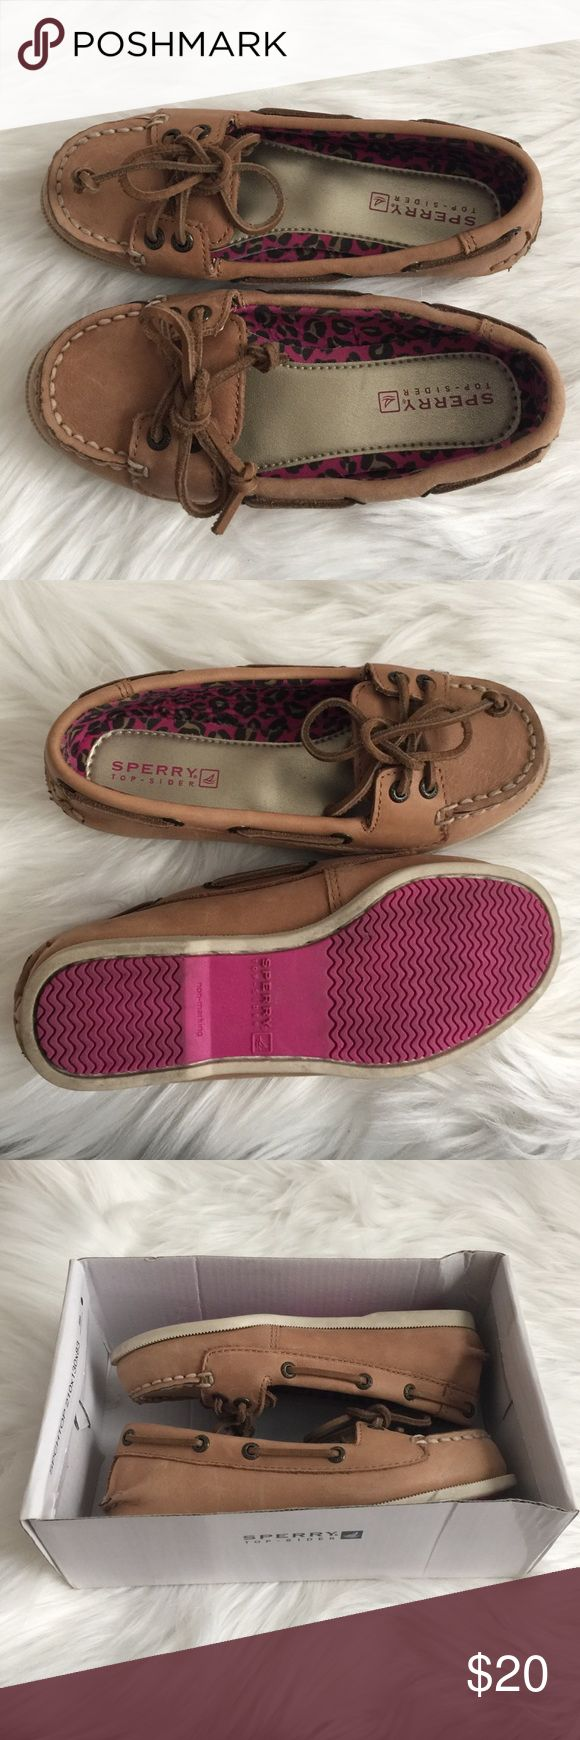 Sperry's for girls size 10 1/2 for preschoolers Barely worn, exactly as seen in the photos. Size 10 1/2 for preschooler; for girls Shoes Dress Shoes